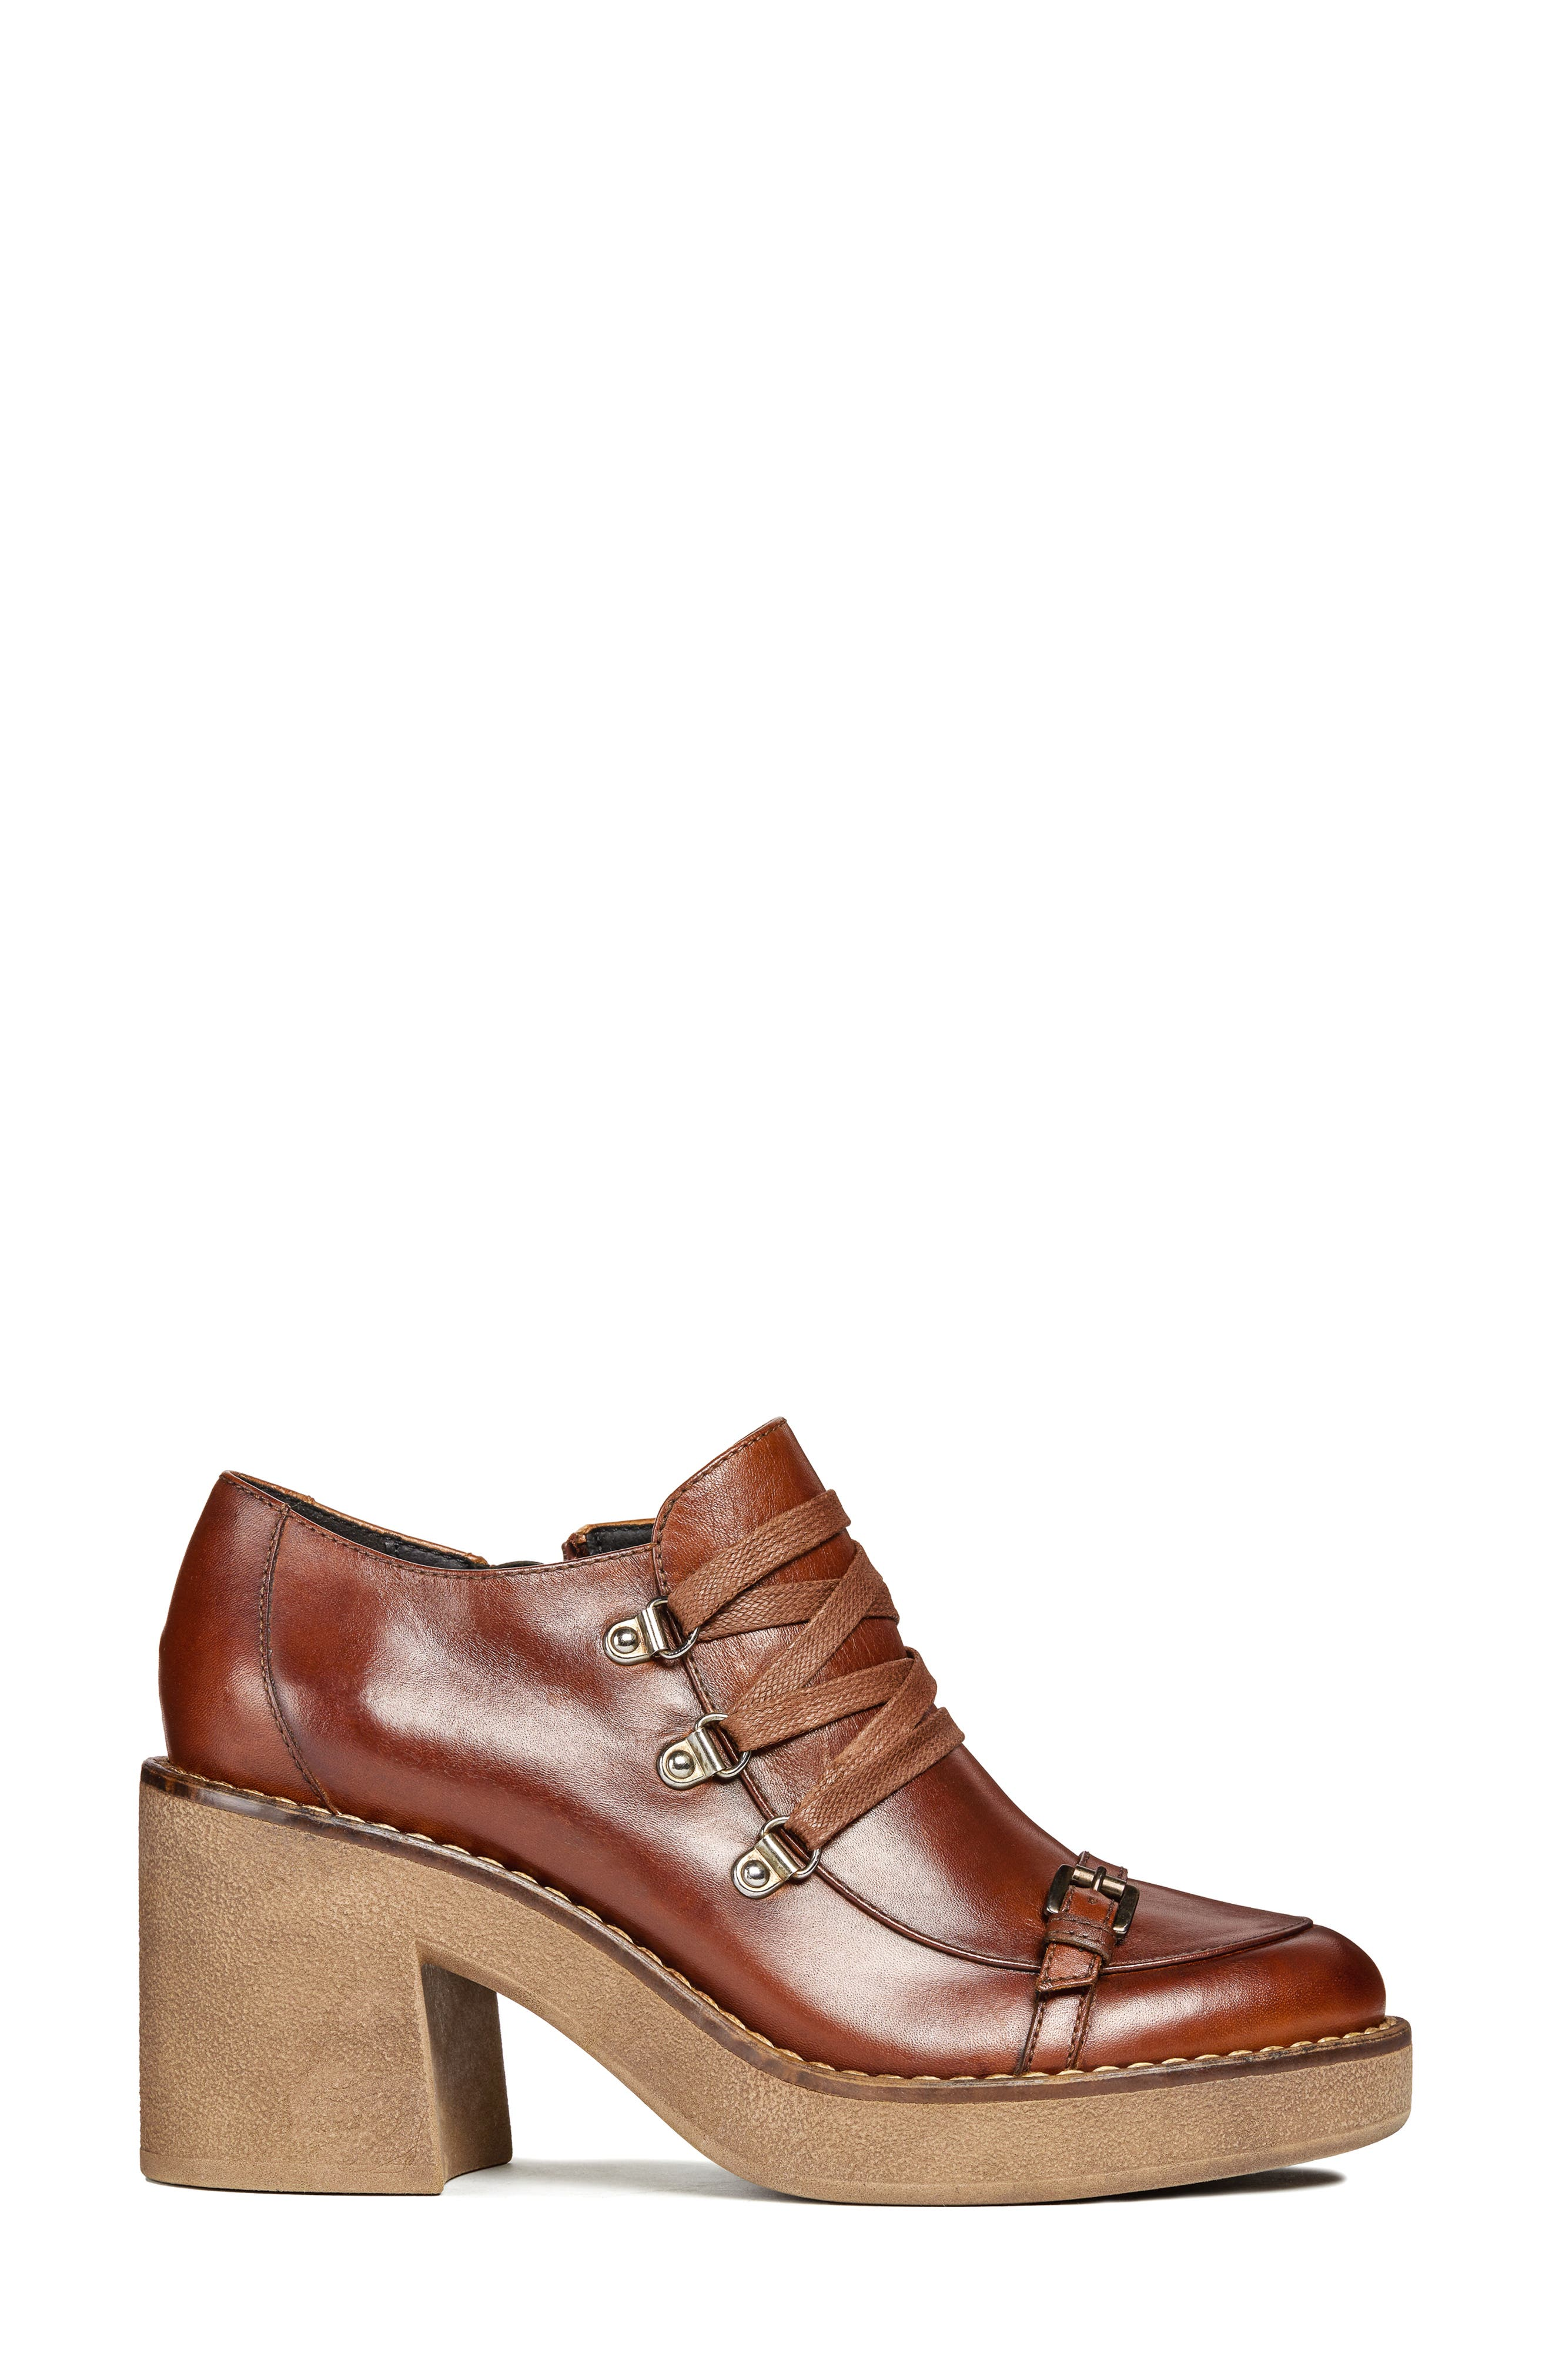 Adrya Bootie,                             Alternate thumbnail 3, color,                             BROWN LEATHER